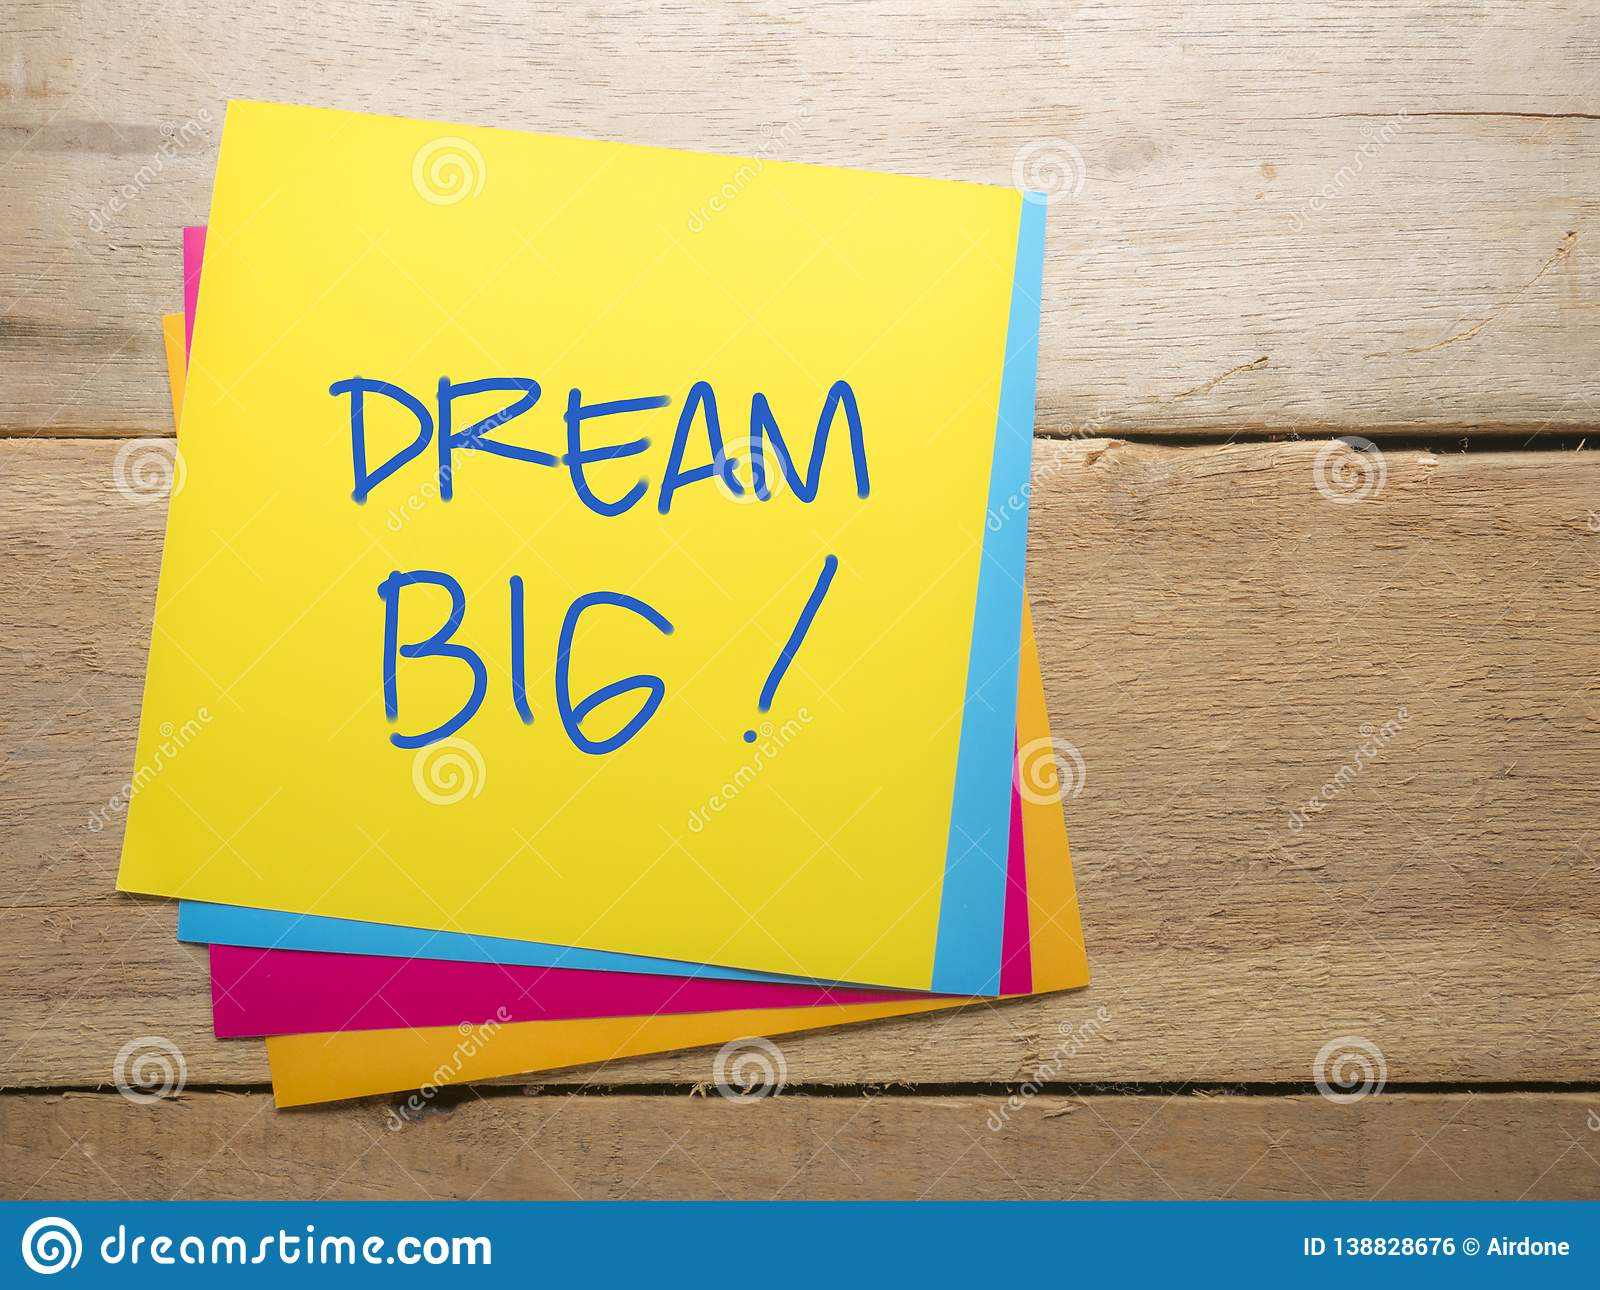 Dream Big, Motivational Business Words Quotes Concept